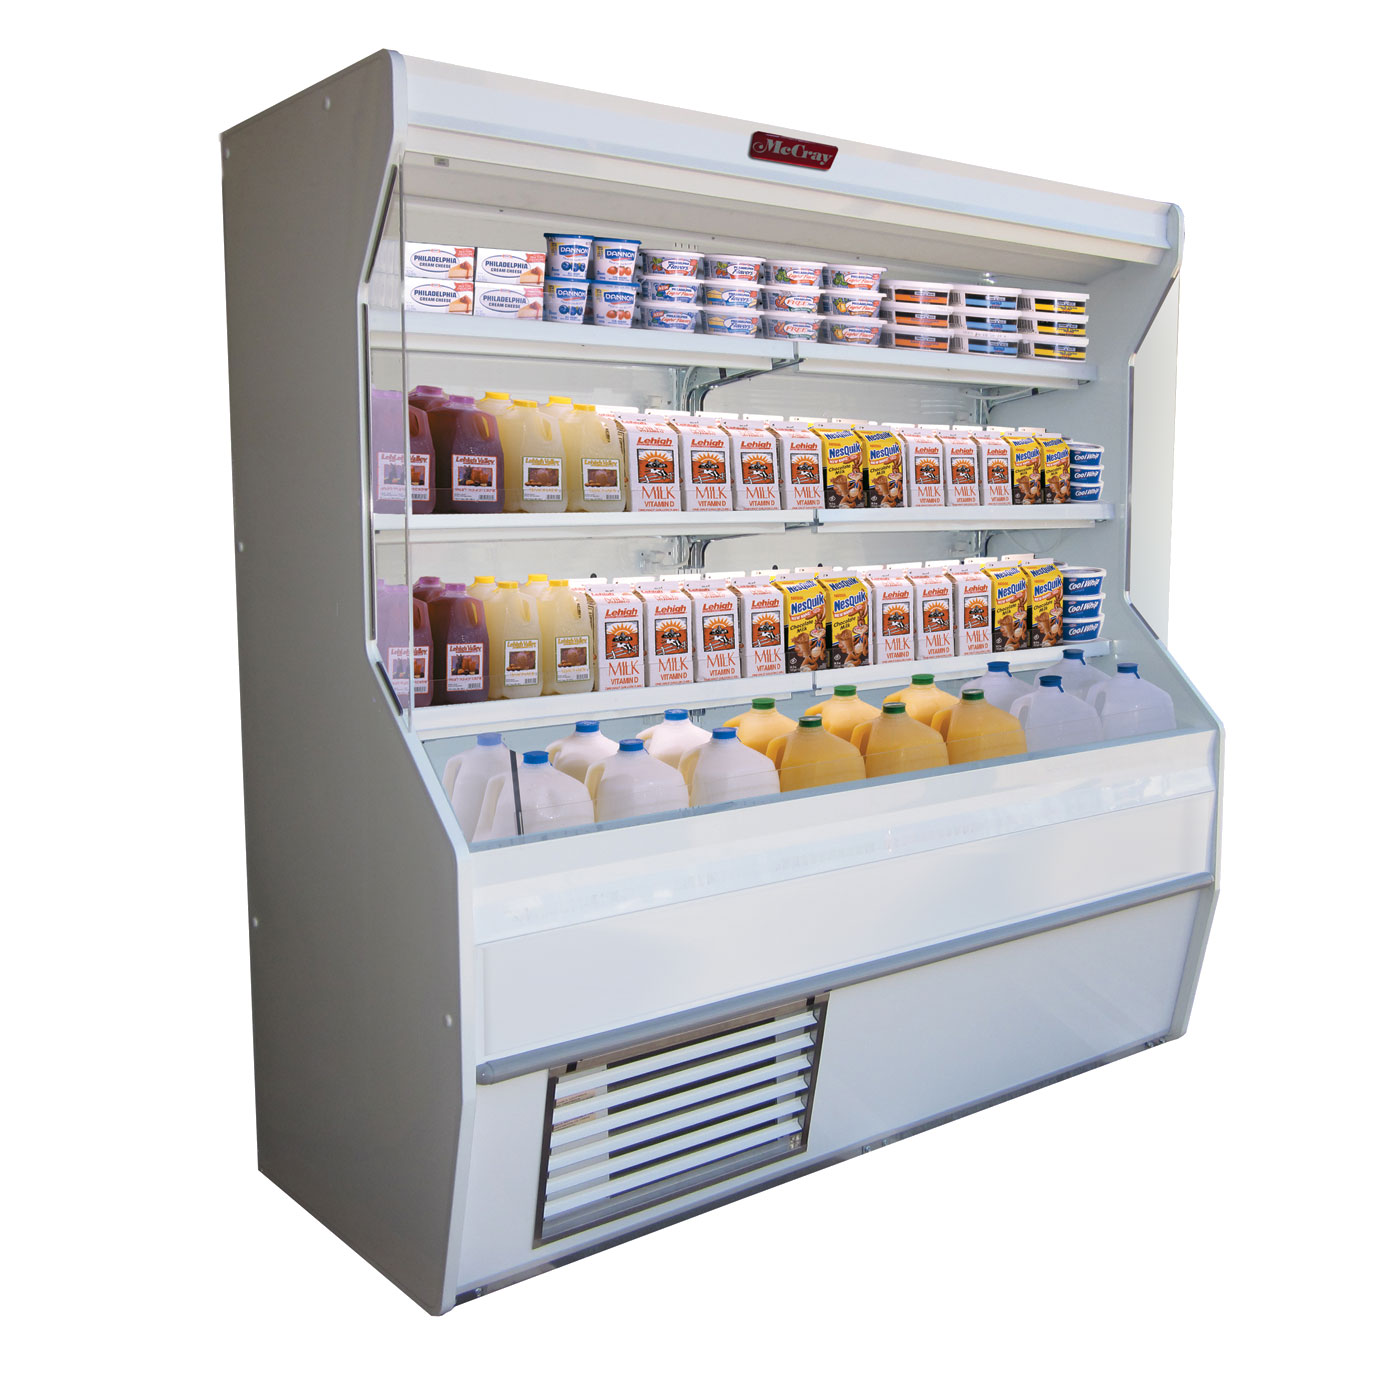 Howard-McCray R-D32E-3-S-LED merchandiser, open refrigerated display